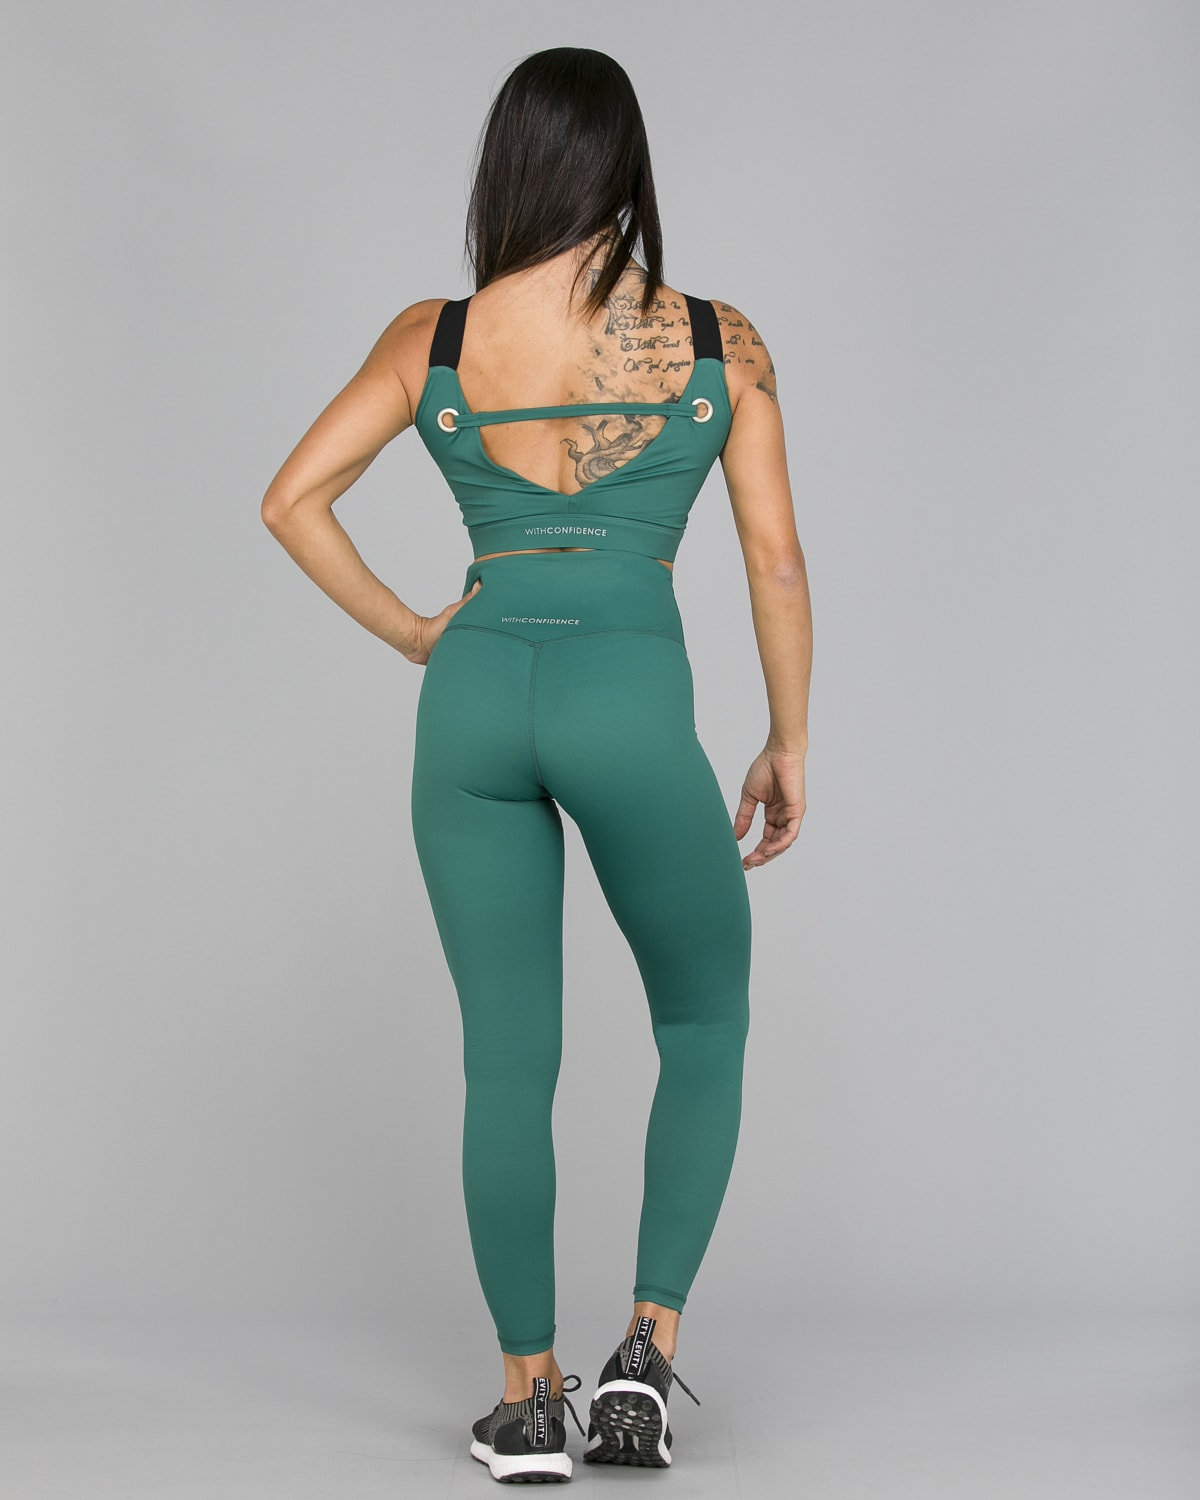 Workout Empire – With Confidence Shape Leggings – Emerald Green3